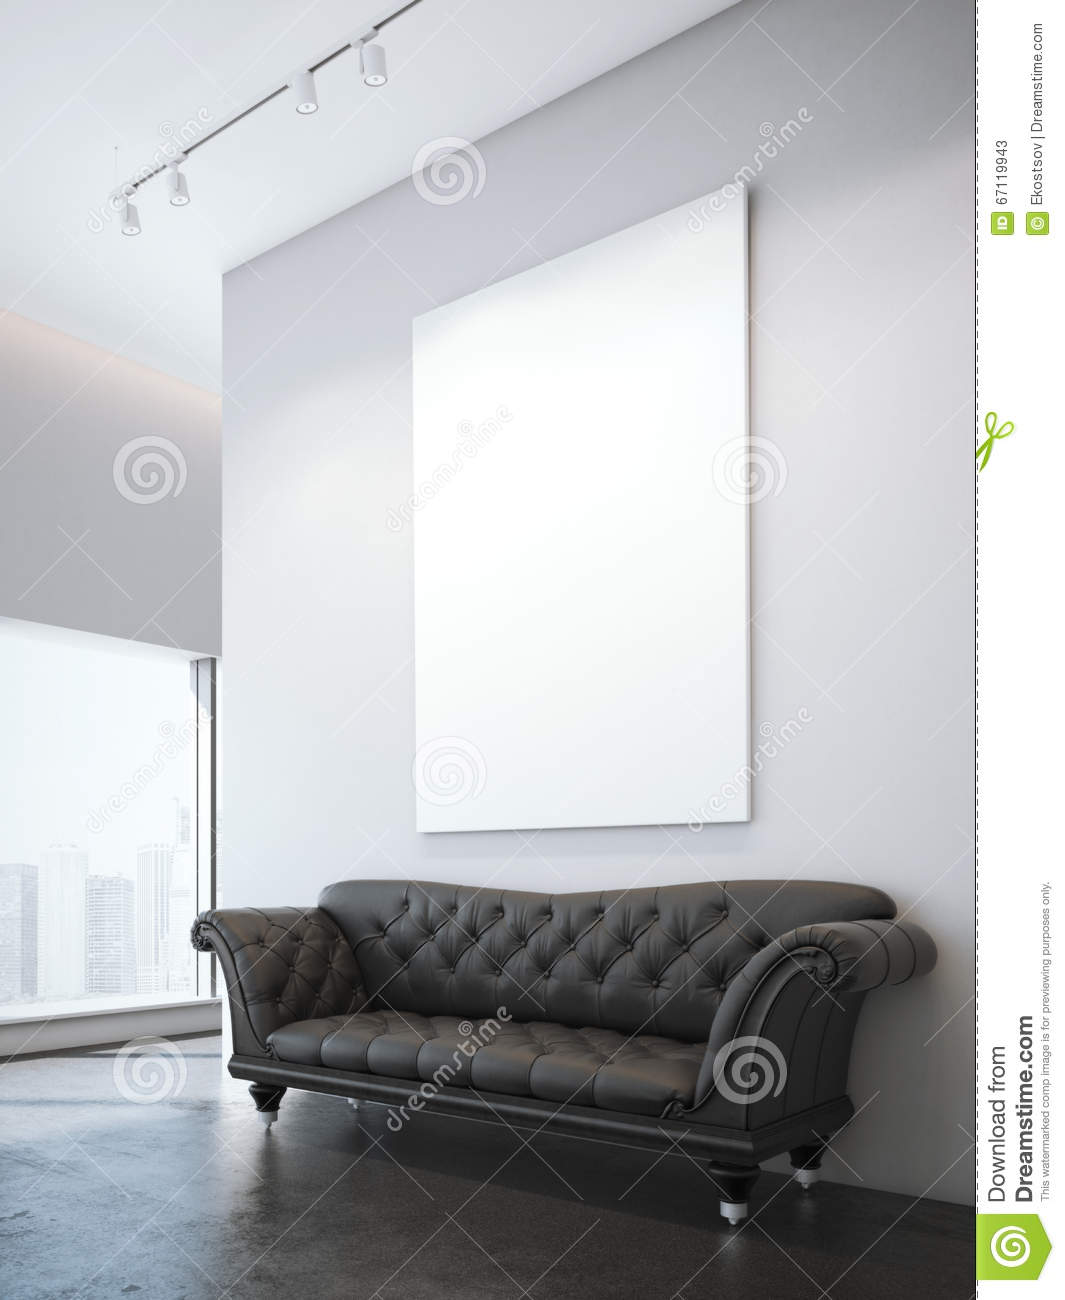 Vintage brown leather sofa and white blank poster in modern interior 3d rendering